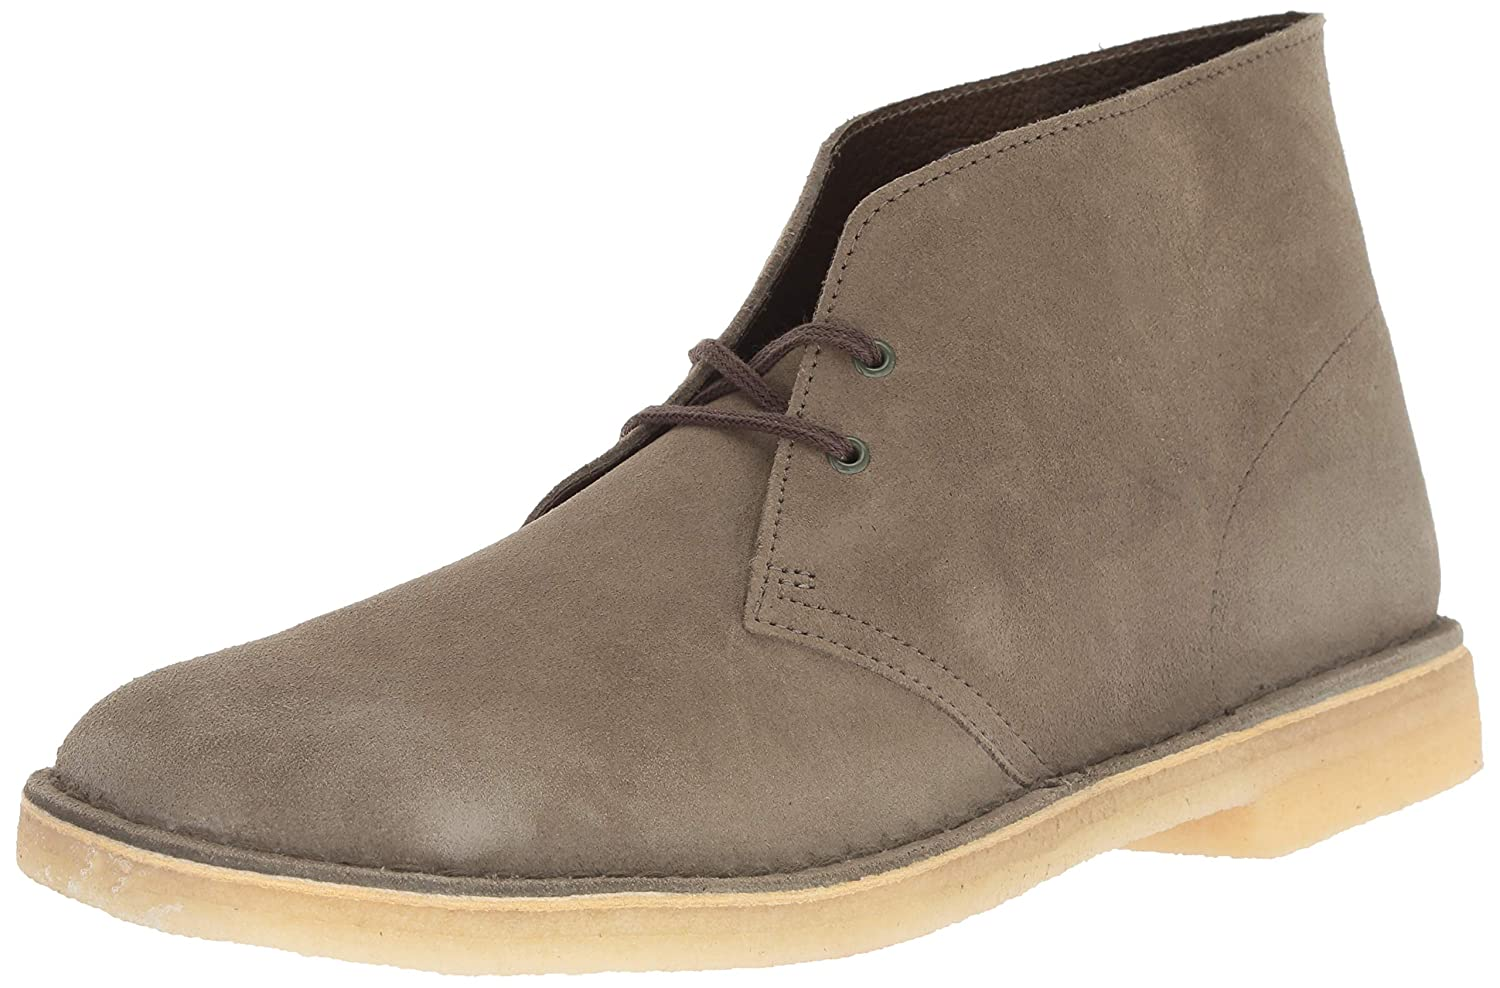 Amazon.com | CLARKS Men's Desert Chukka Boot, Olive Suede, 080 M US | Chukka